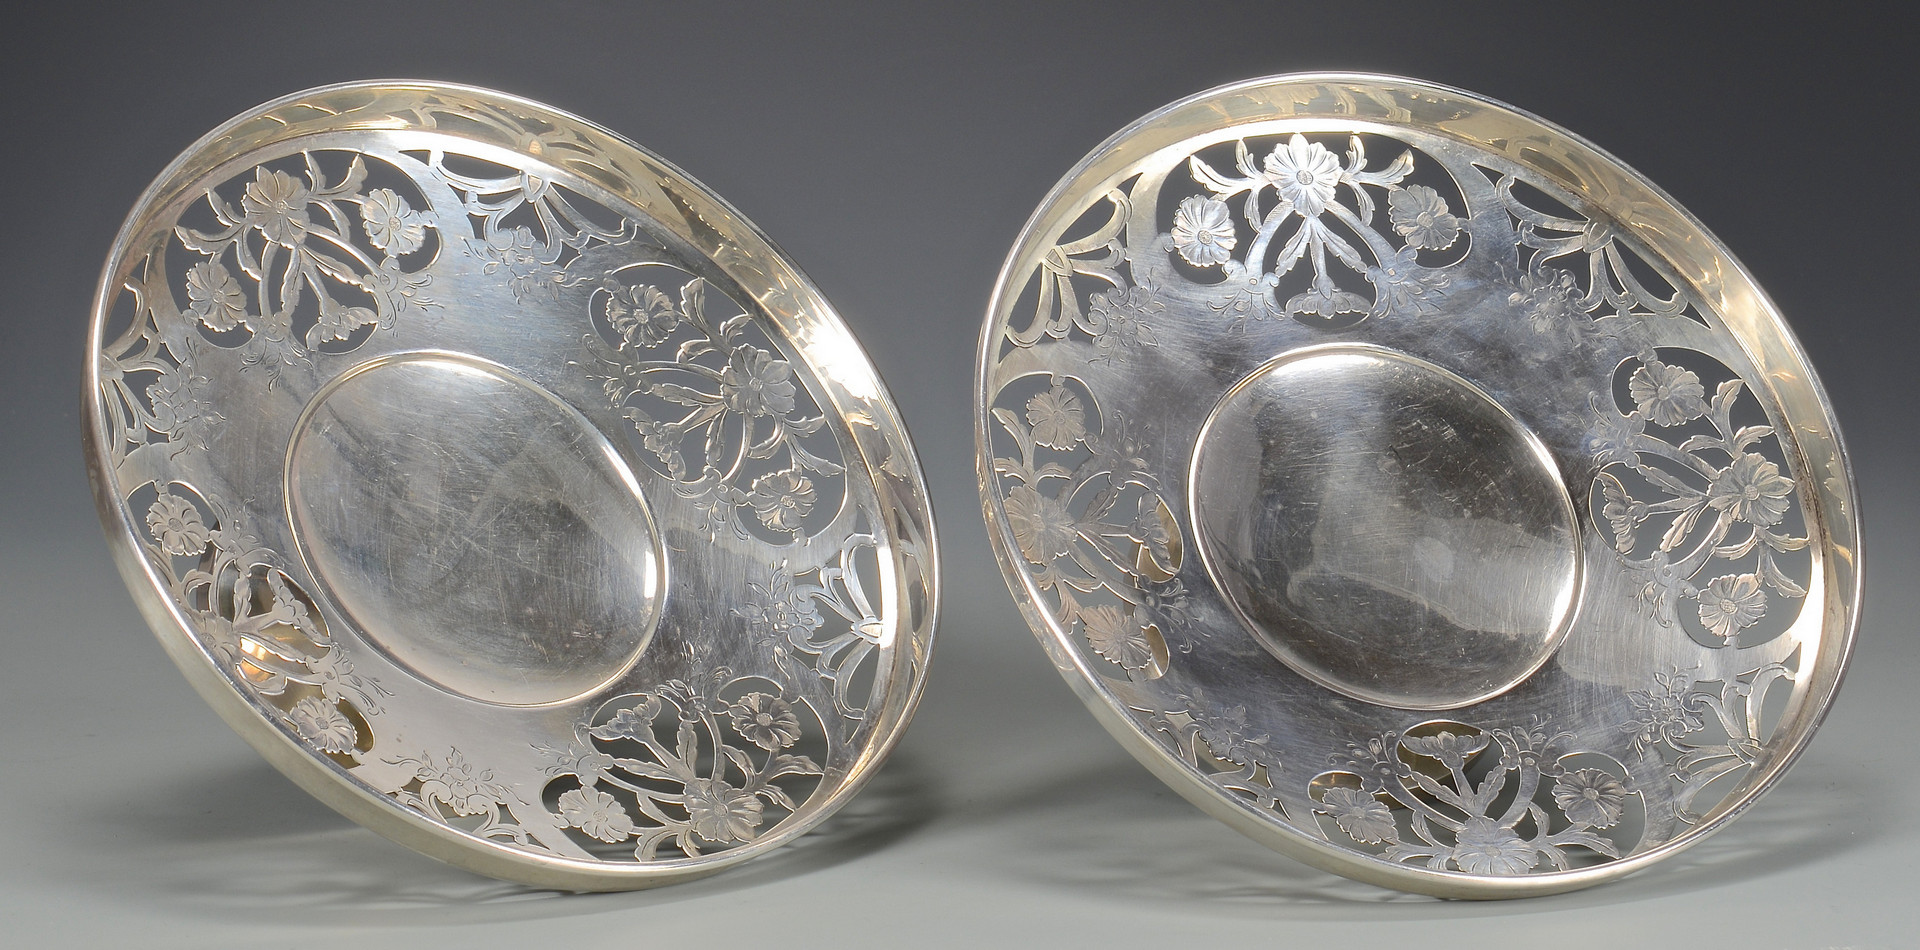 Lot 256: 2 Sterling Compotes, Sandwich or Dessert